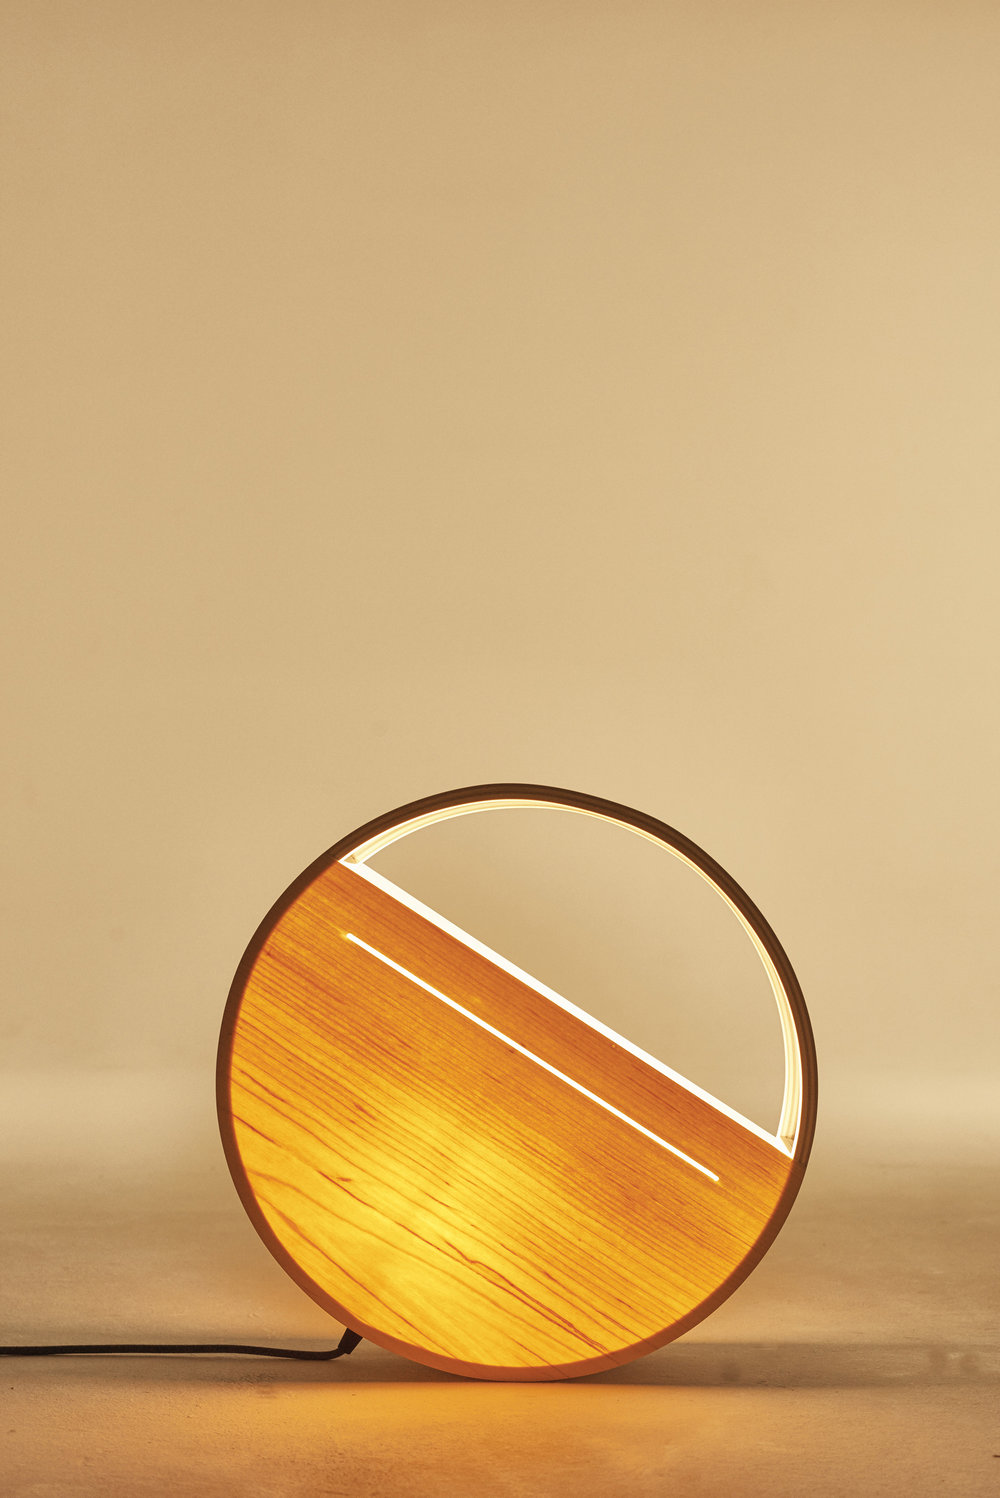 Lozi's beautiful Sunset lamp, made from birch plywood and pine veneer